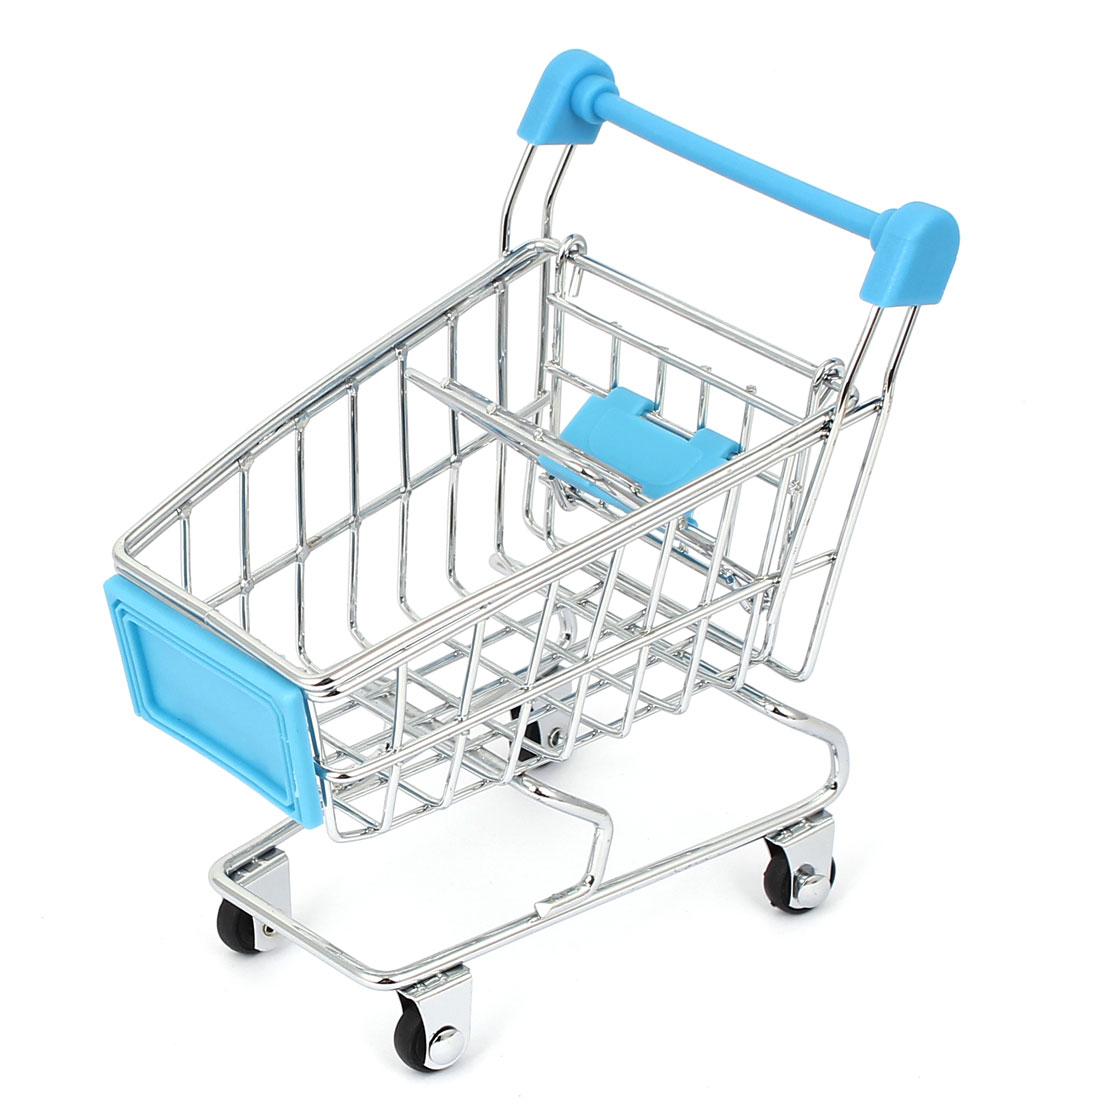 Mini Supermarket Shopping Hand Trolly Cart Model Toy Storage Container Light Blue